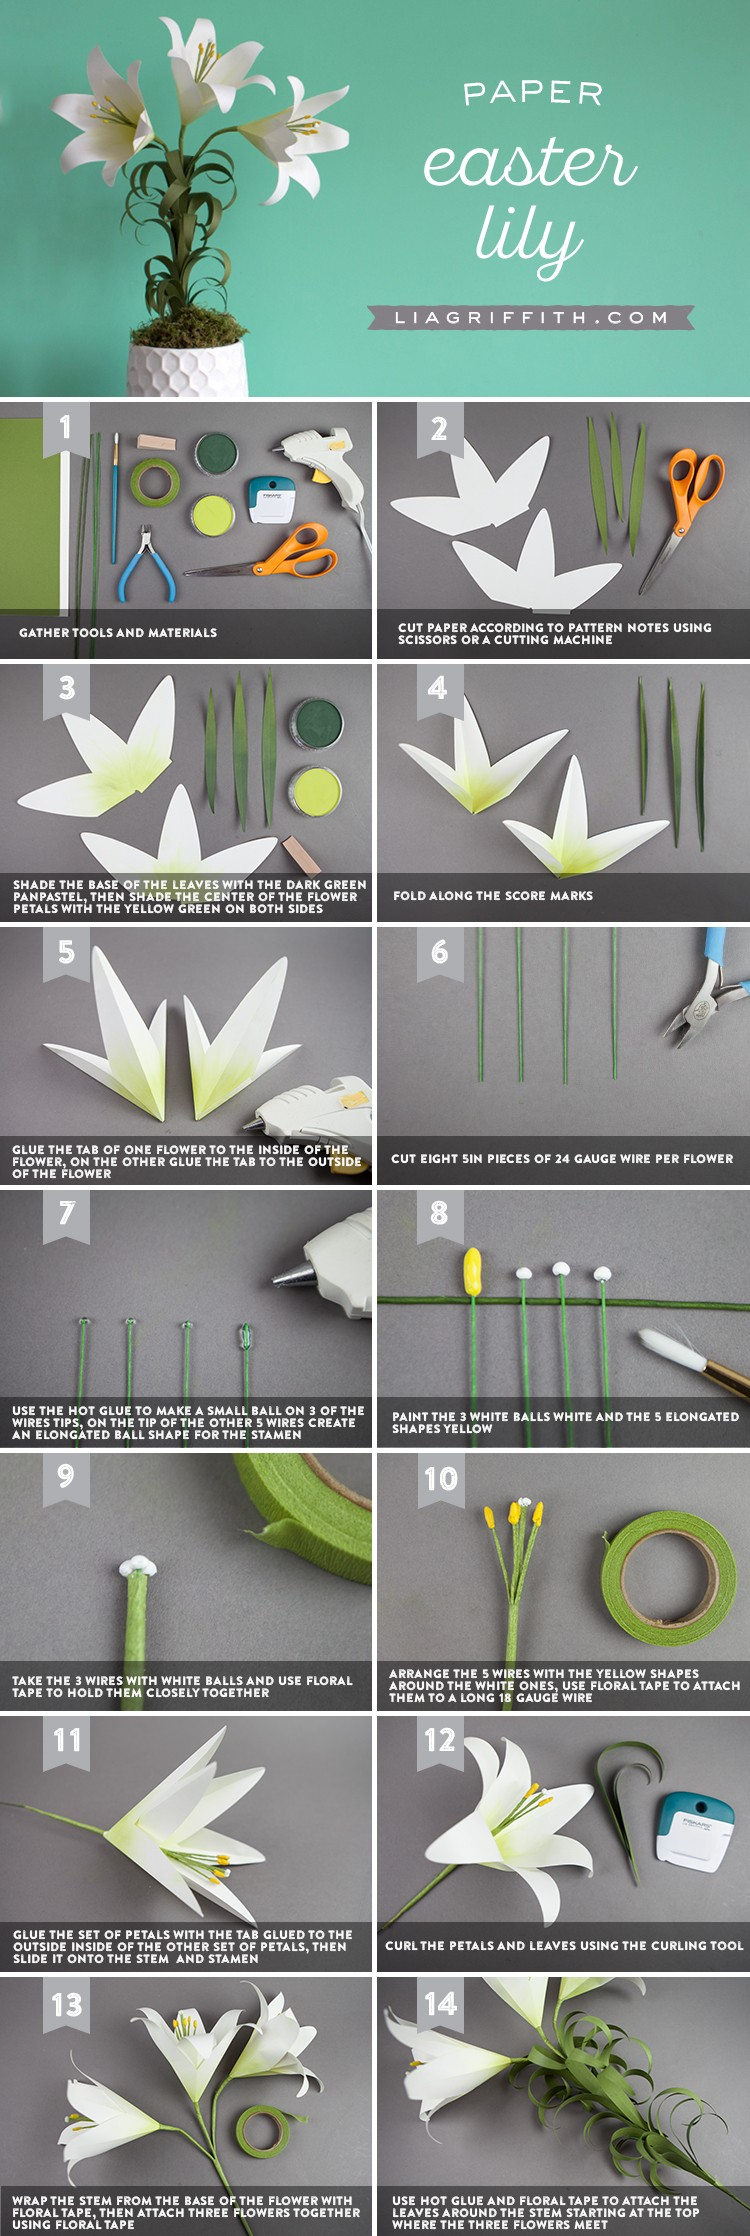 Diy Elegant Paper Easter Lily Paperpapers Blog